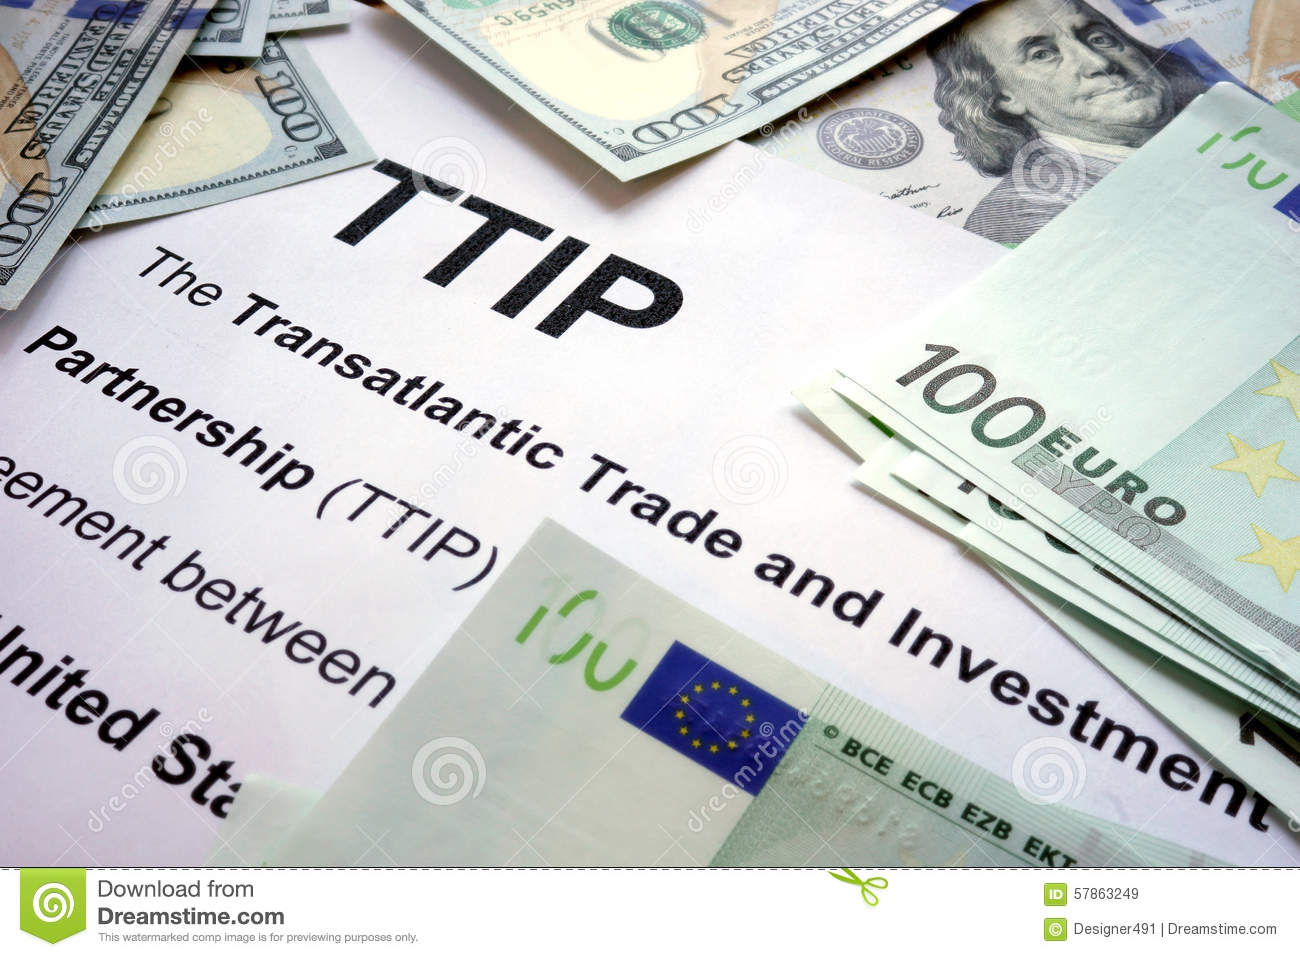 Word TTIP on a paper with dollars.